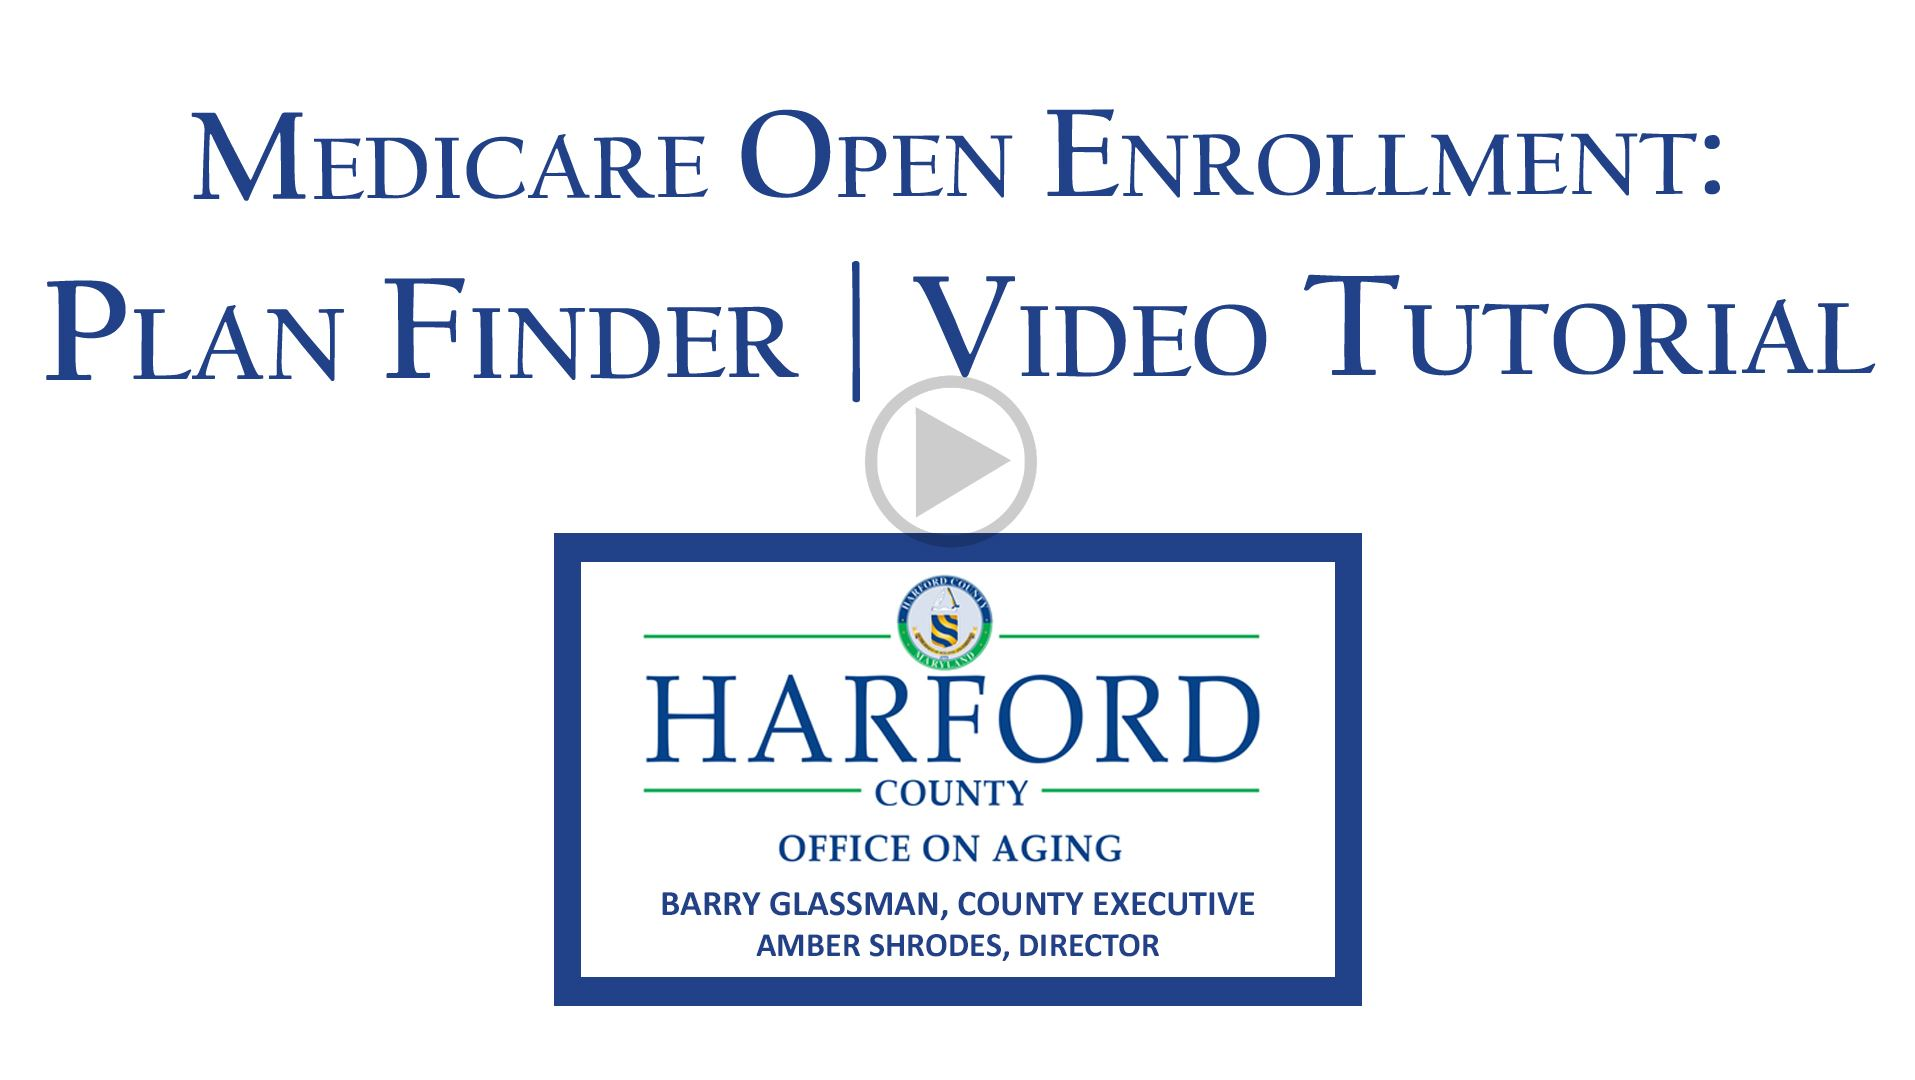 Medicare Open Enrollment 2020 New Plan Finder Tutorial Video Play button